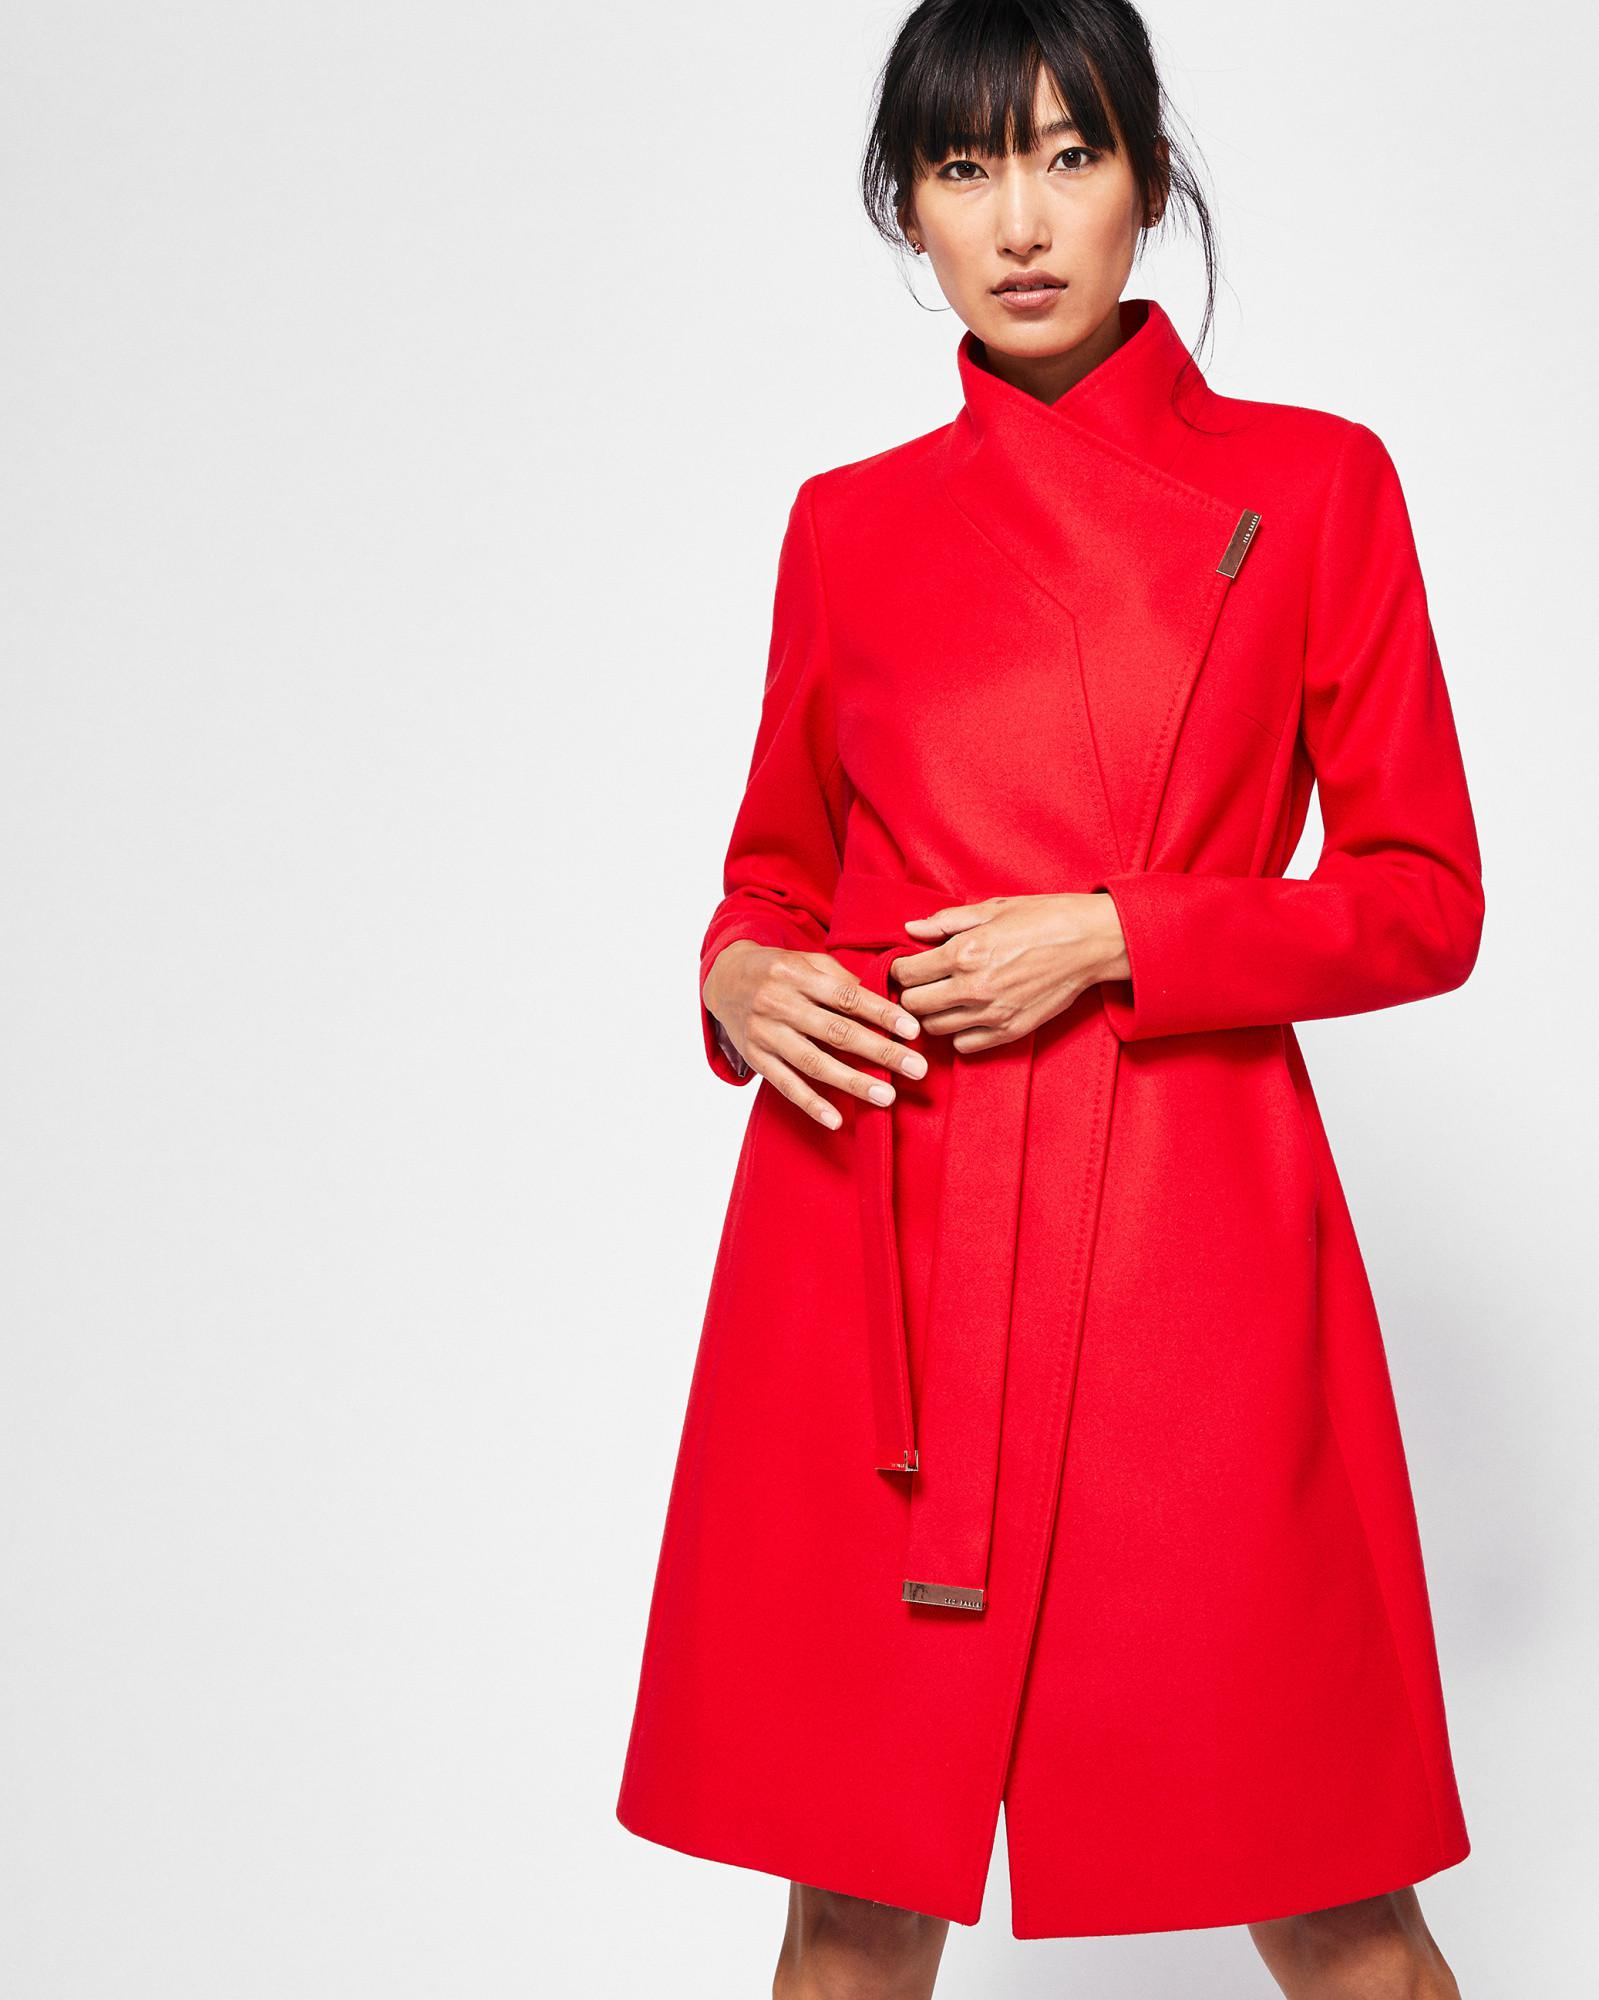 46f1e260bfd5d Lyst - Ted Baker Cashmere-blend Wrap Front Coat in Red